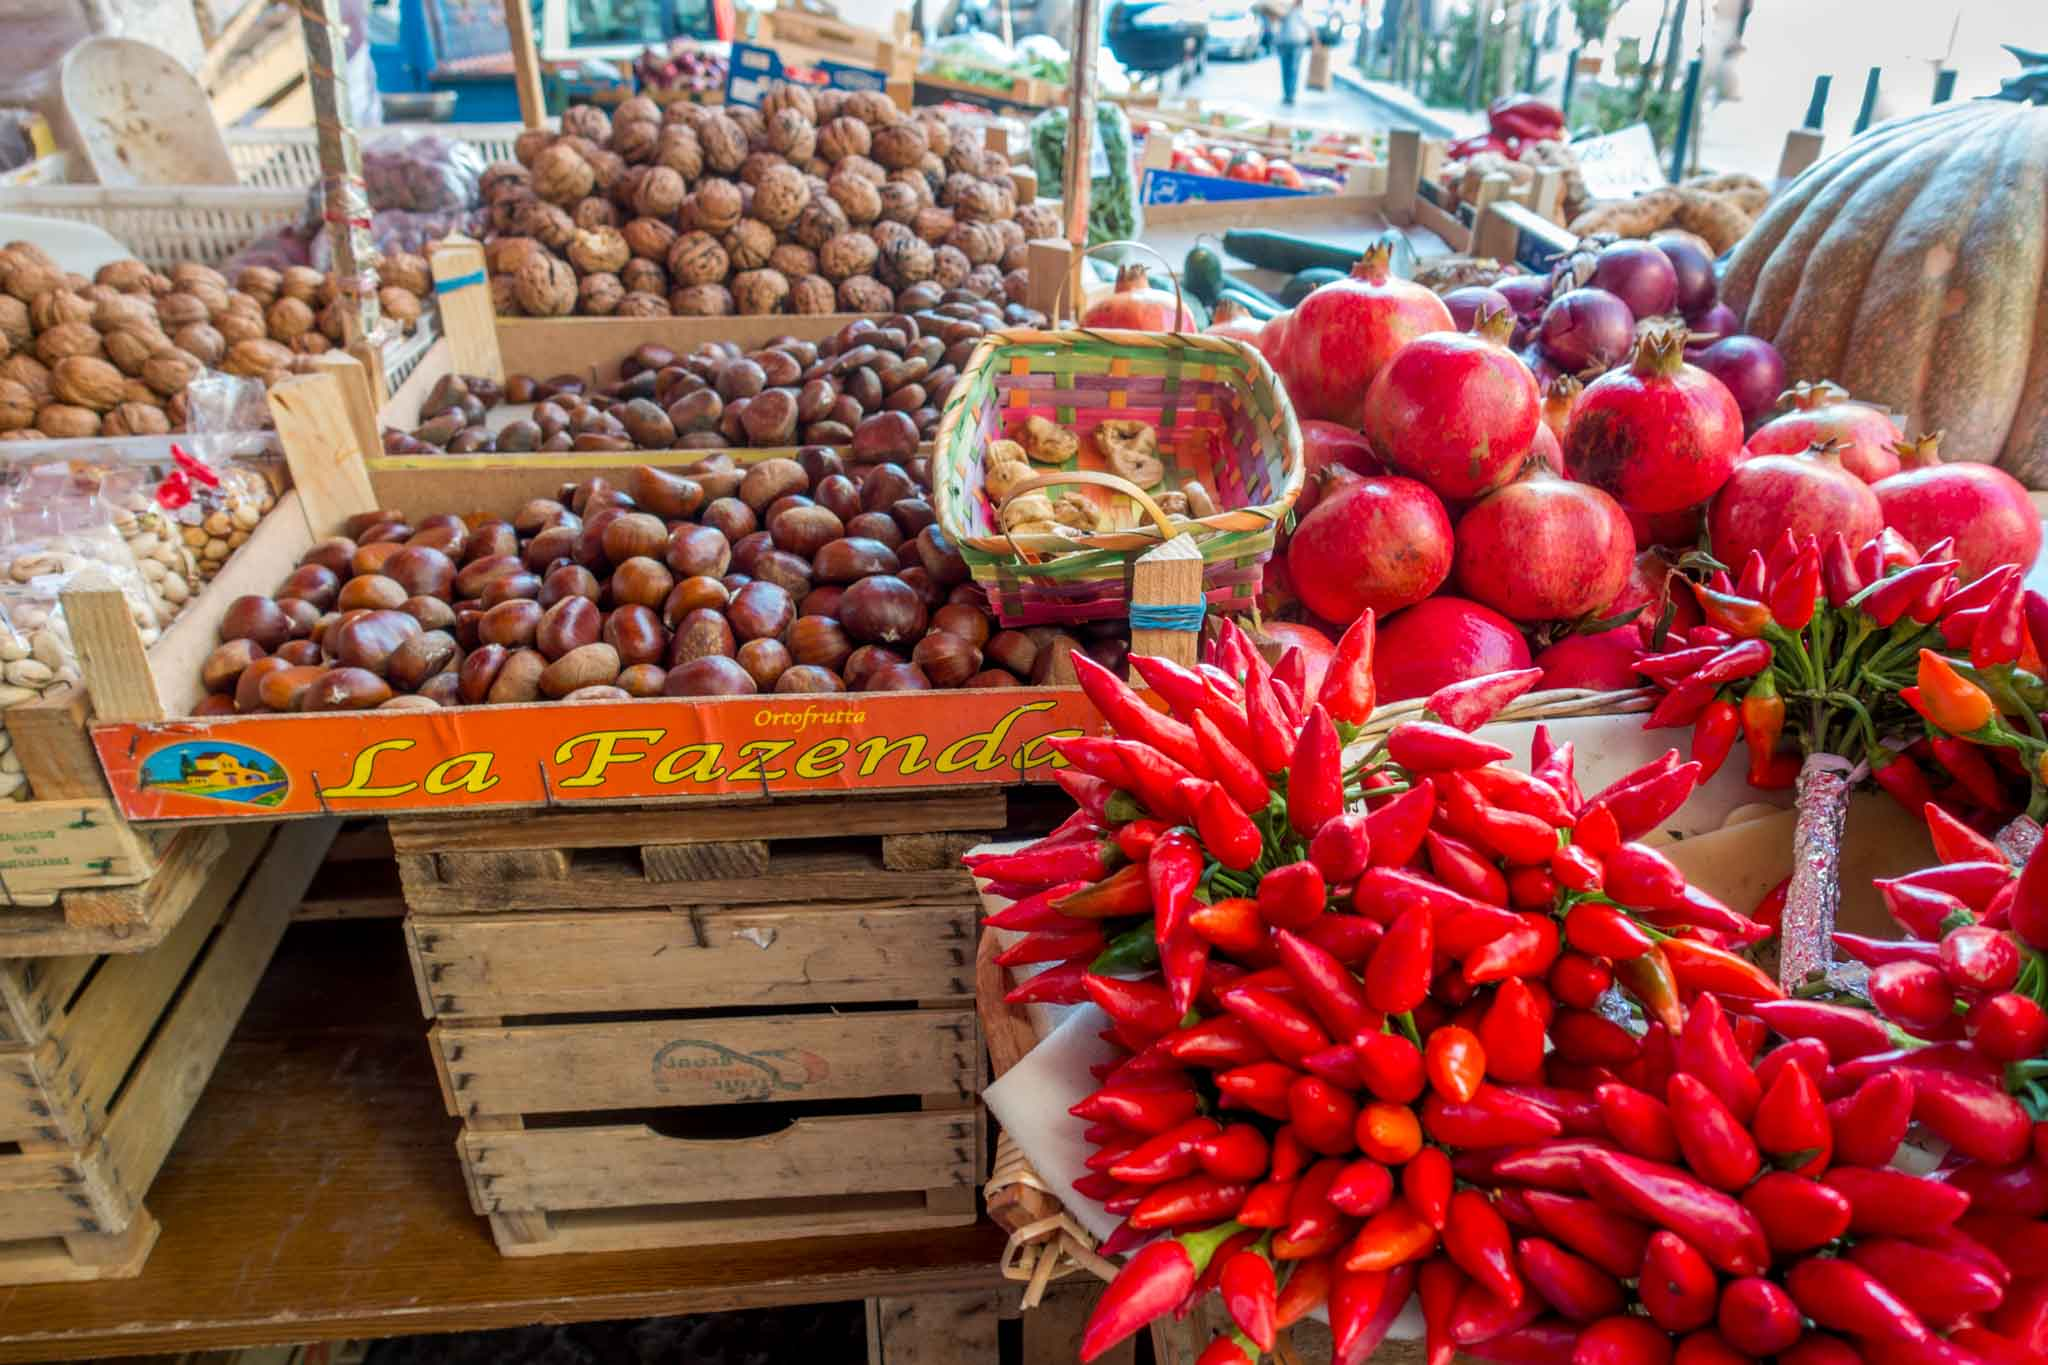 Fruit, vegetables, and nuts on display at the Capo market in Palermo Italy